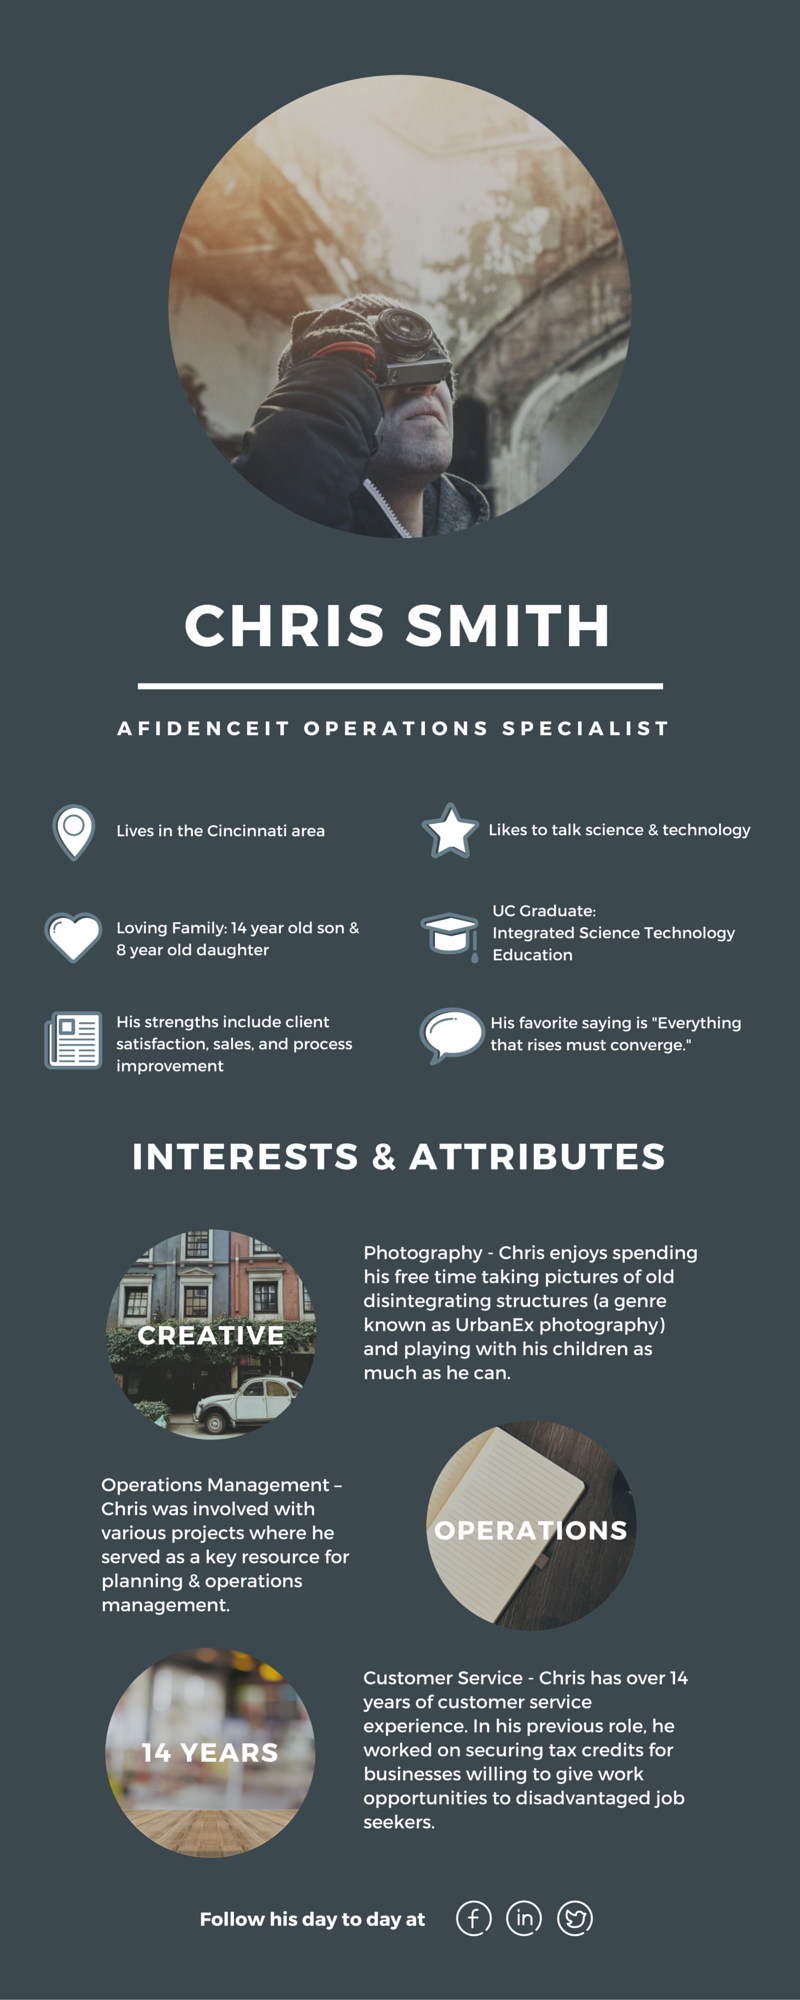 Operations Management, Urban Exploration & Tech...Welcome Chris Smith: New Operations Specialist at AfidenceIT